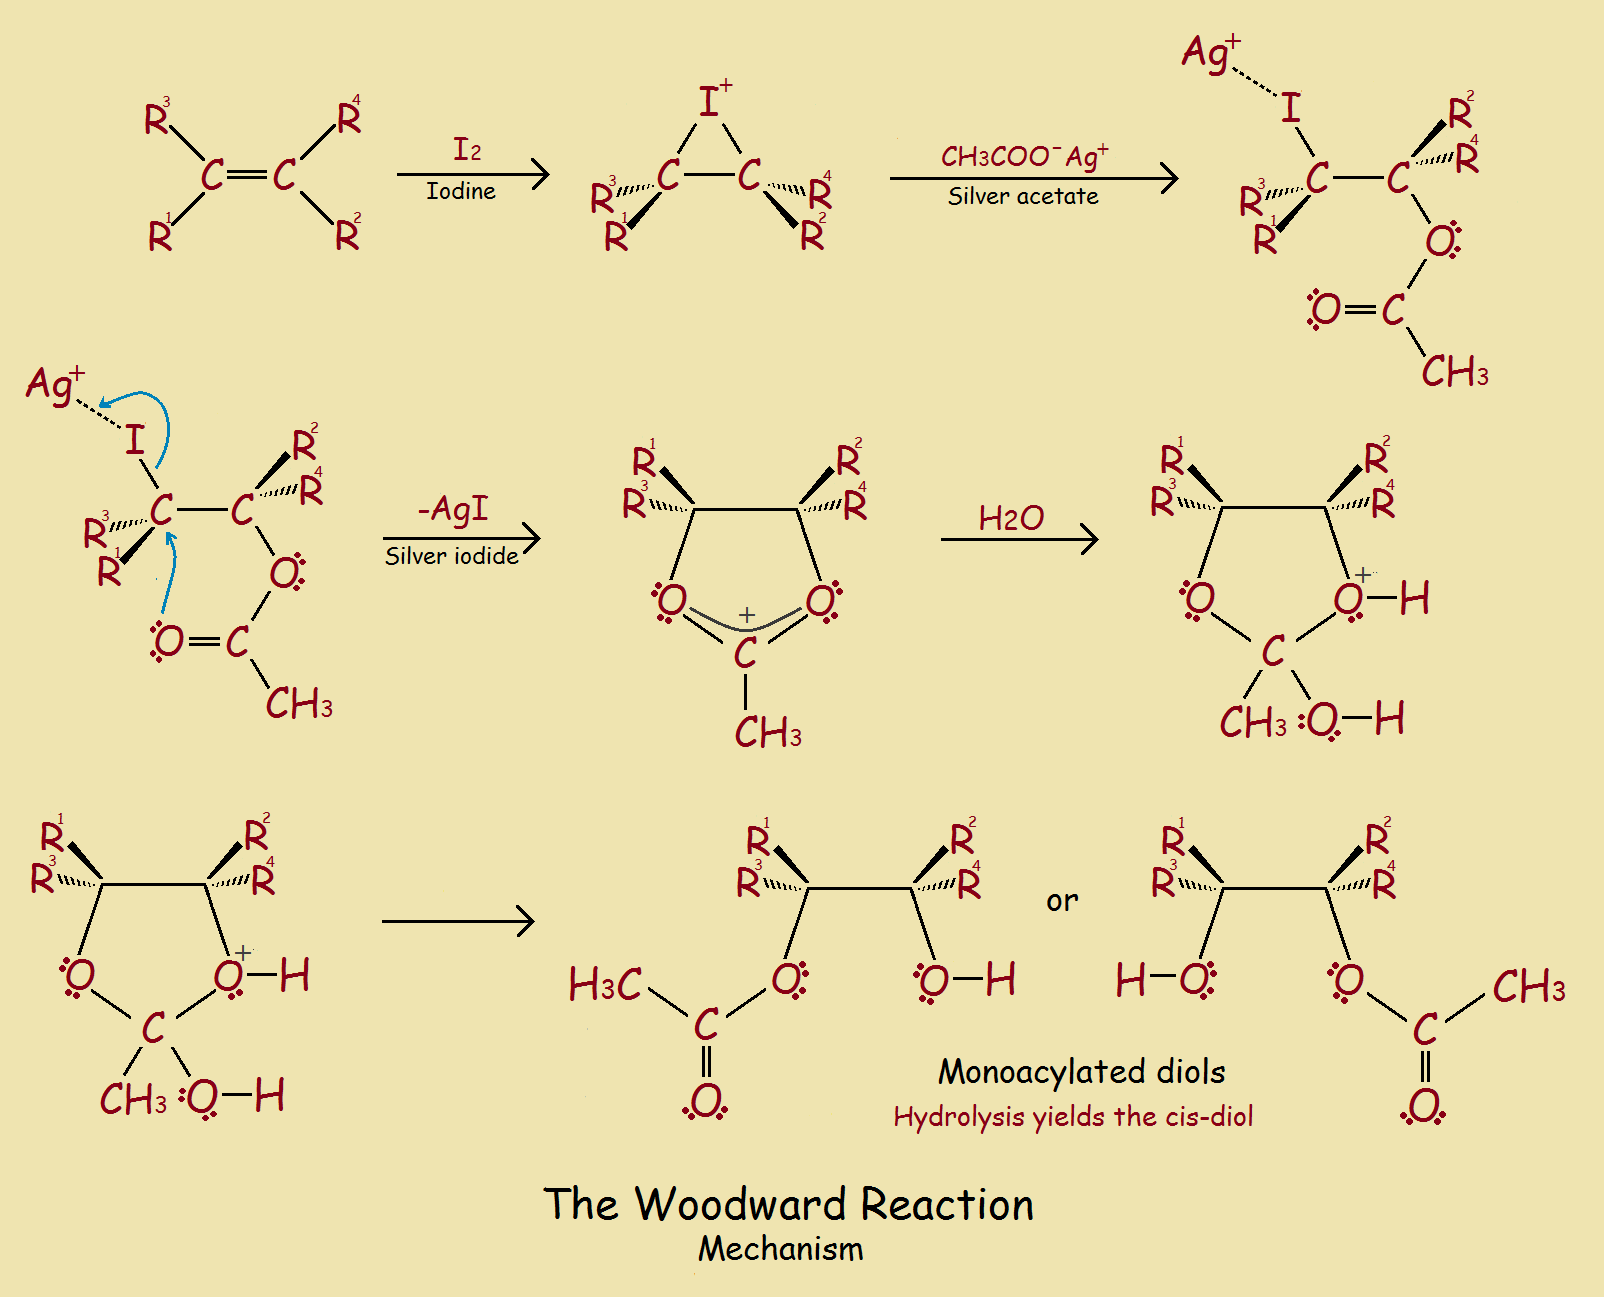 Woodward reaction mechanism